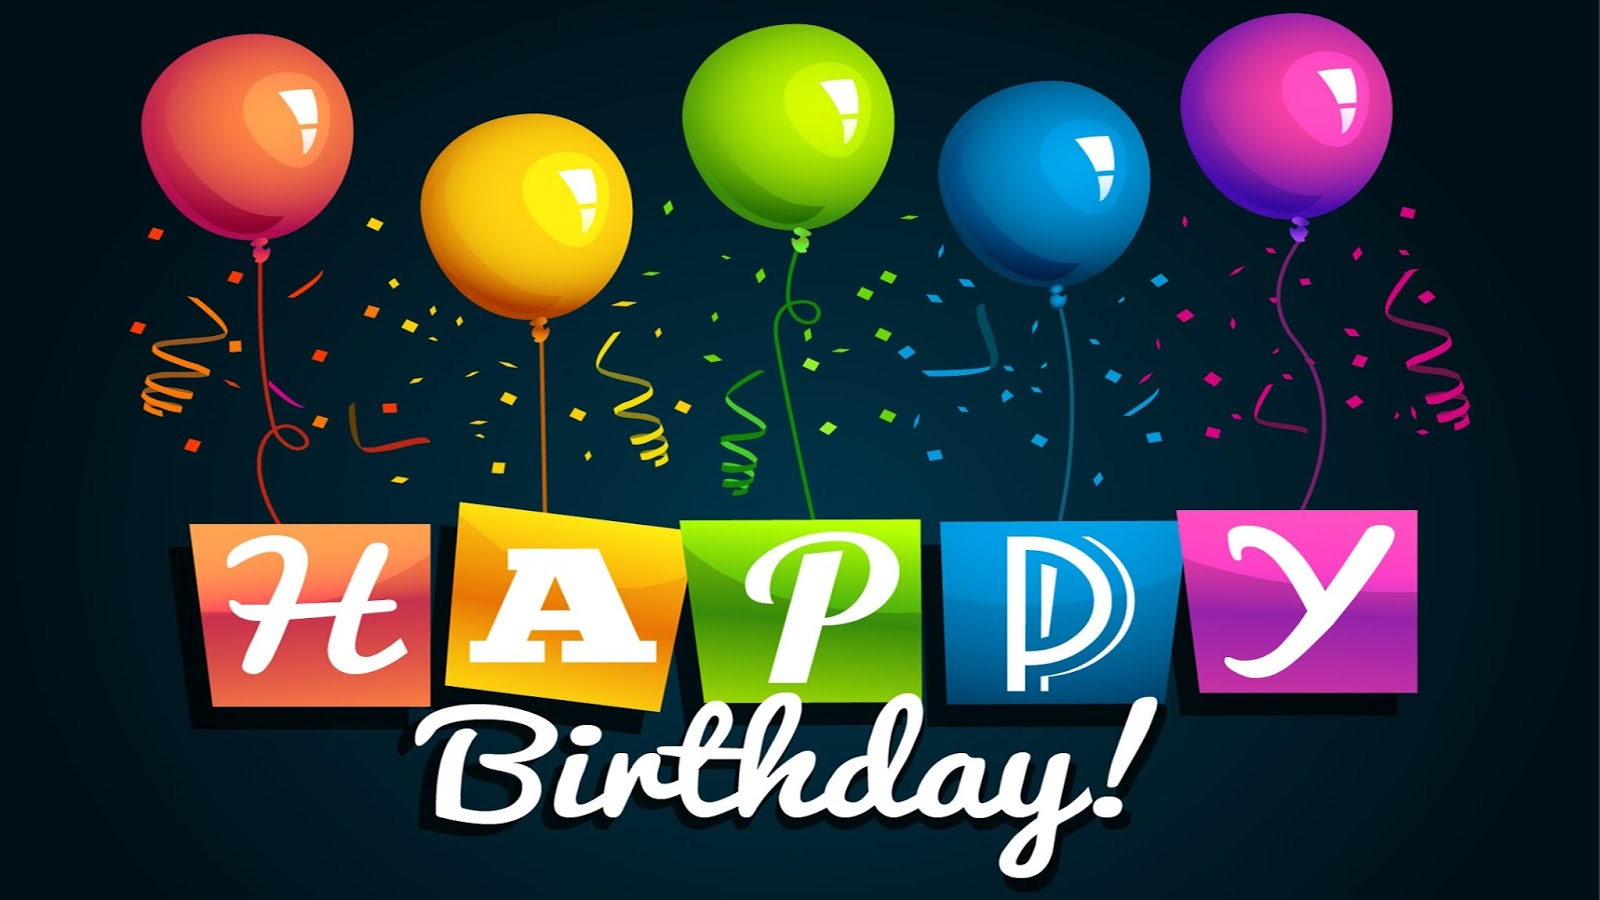 50happy Birthday Greetings Wishes Hd Images Facebook Wishes Love